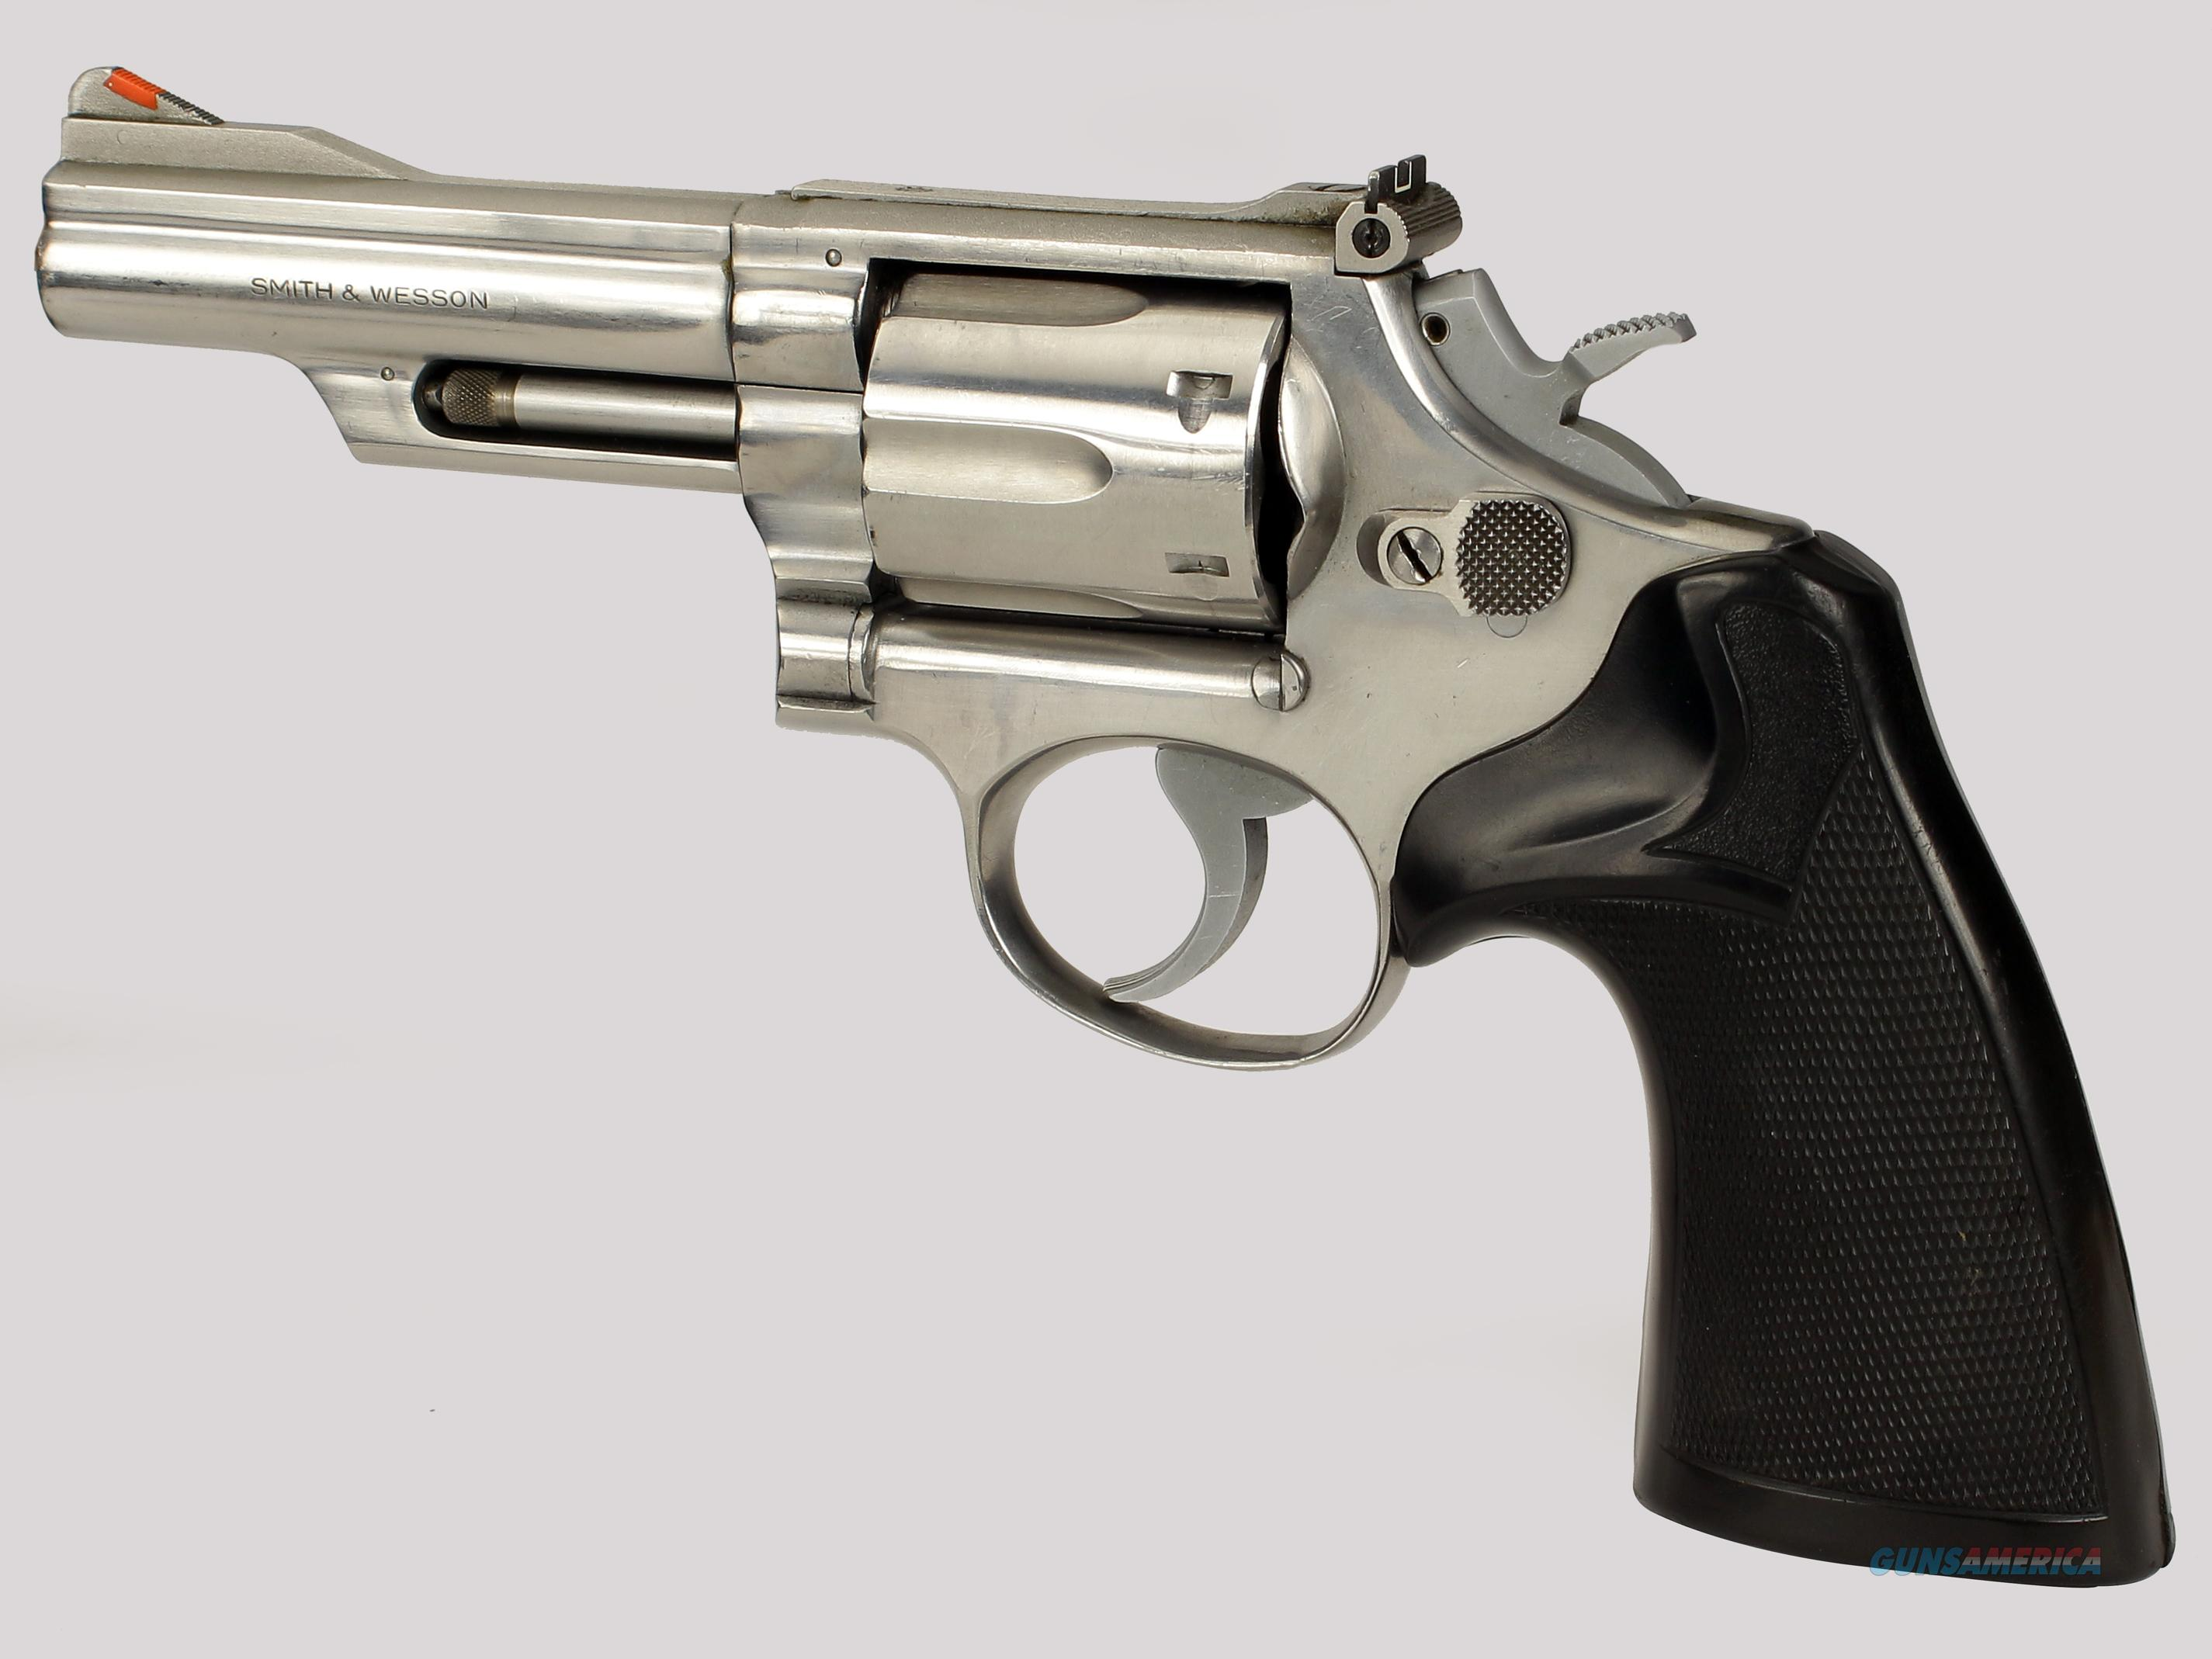 Smith & Wesson Model 66 Revolver  Guns > Pistols > Smith & Wesson Revolvers > Full Frame Revolver